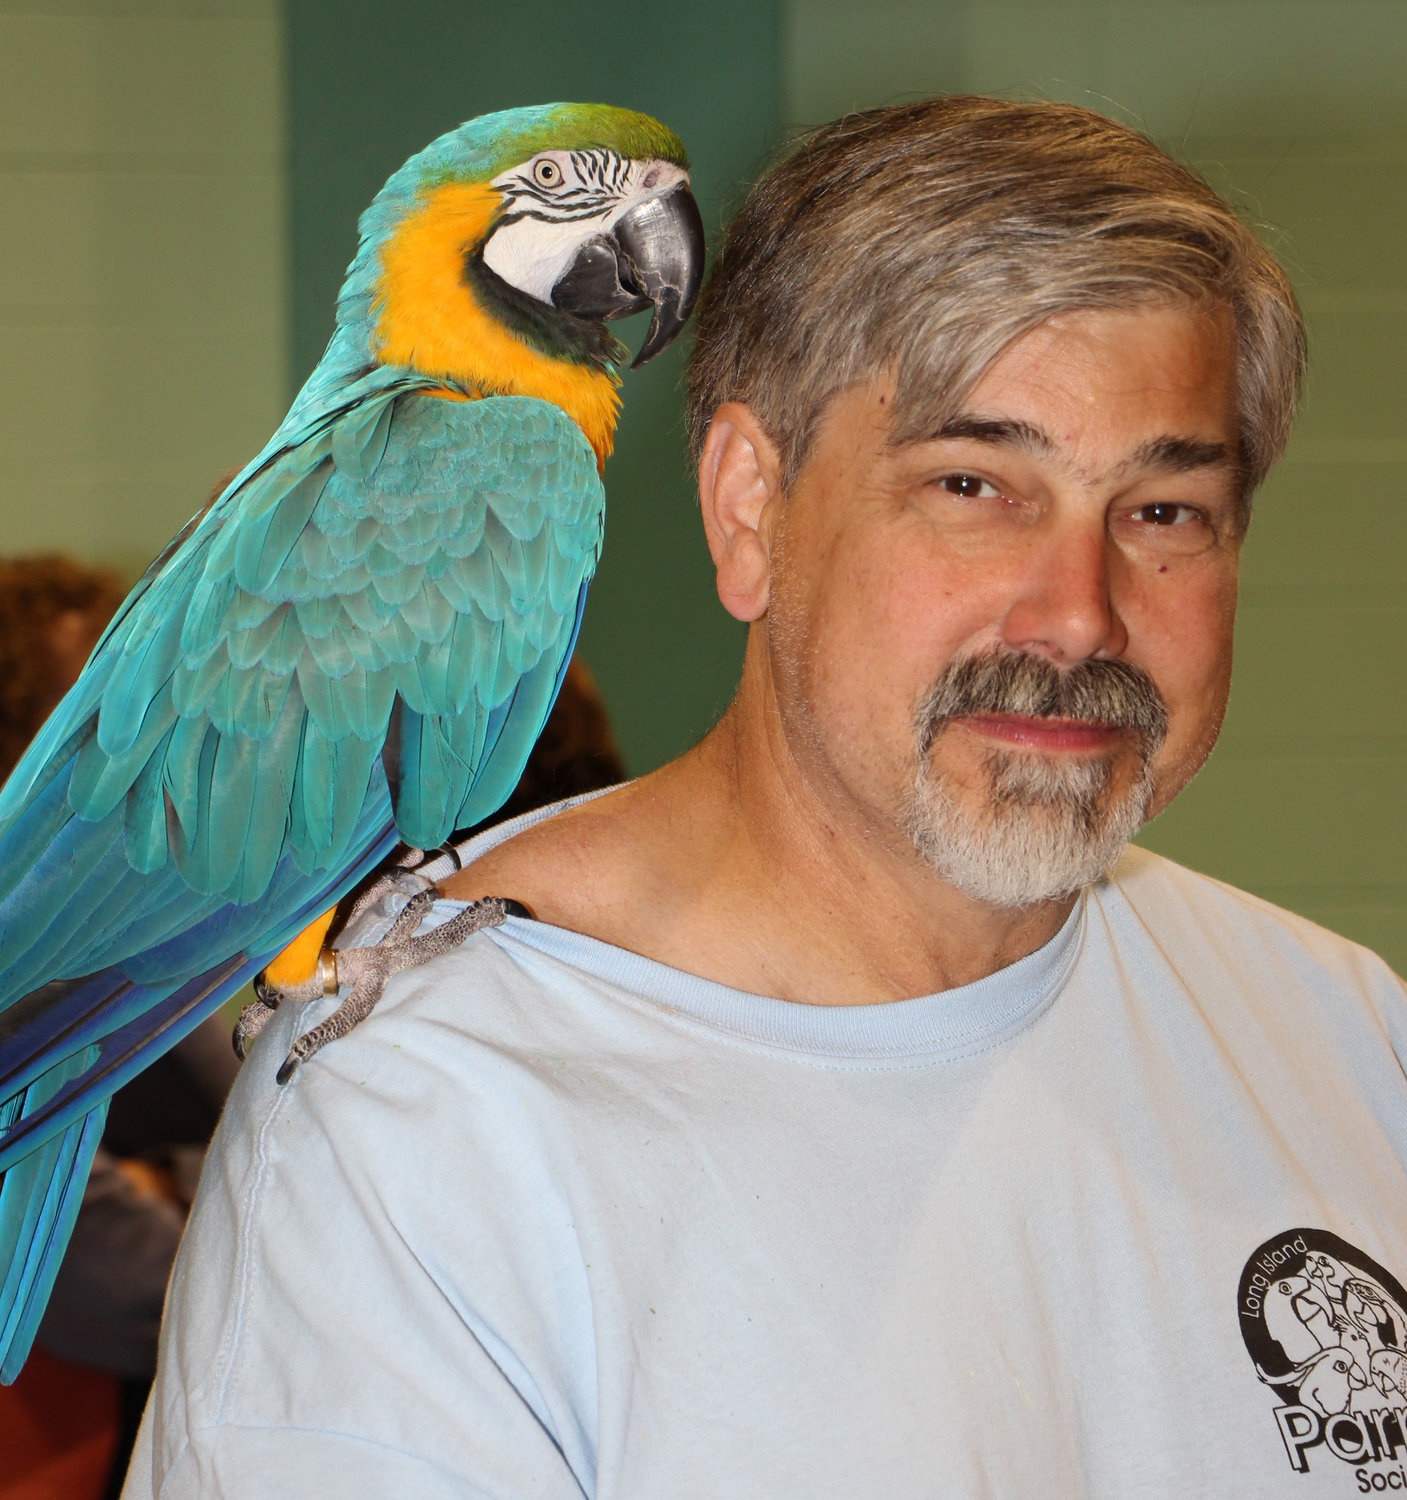 Lee Lambertson with a zircon blue and gold macaw parrot.